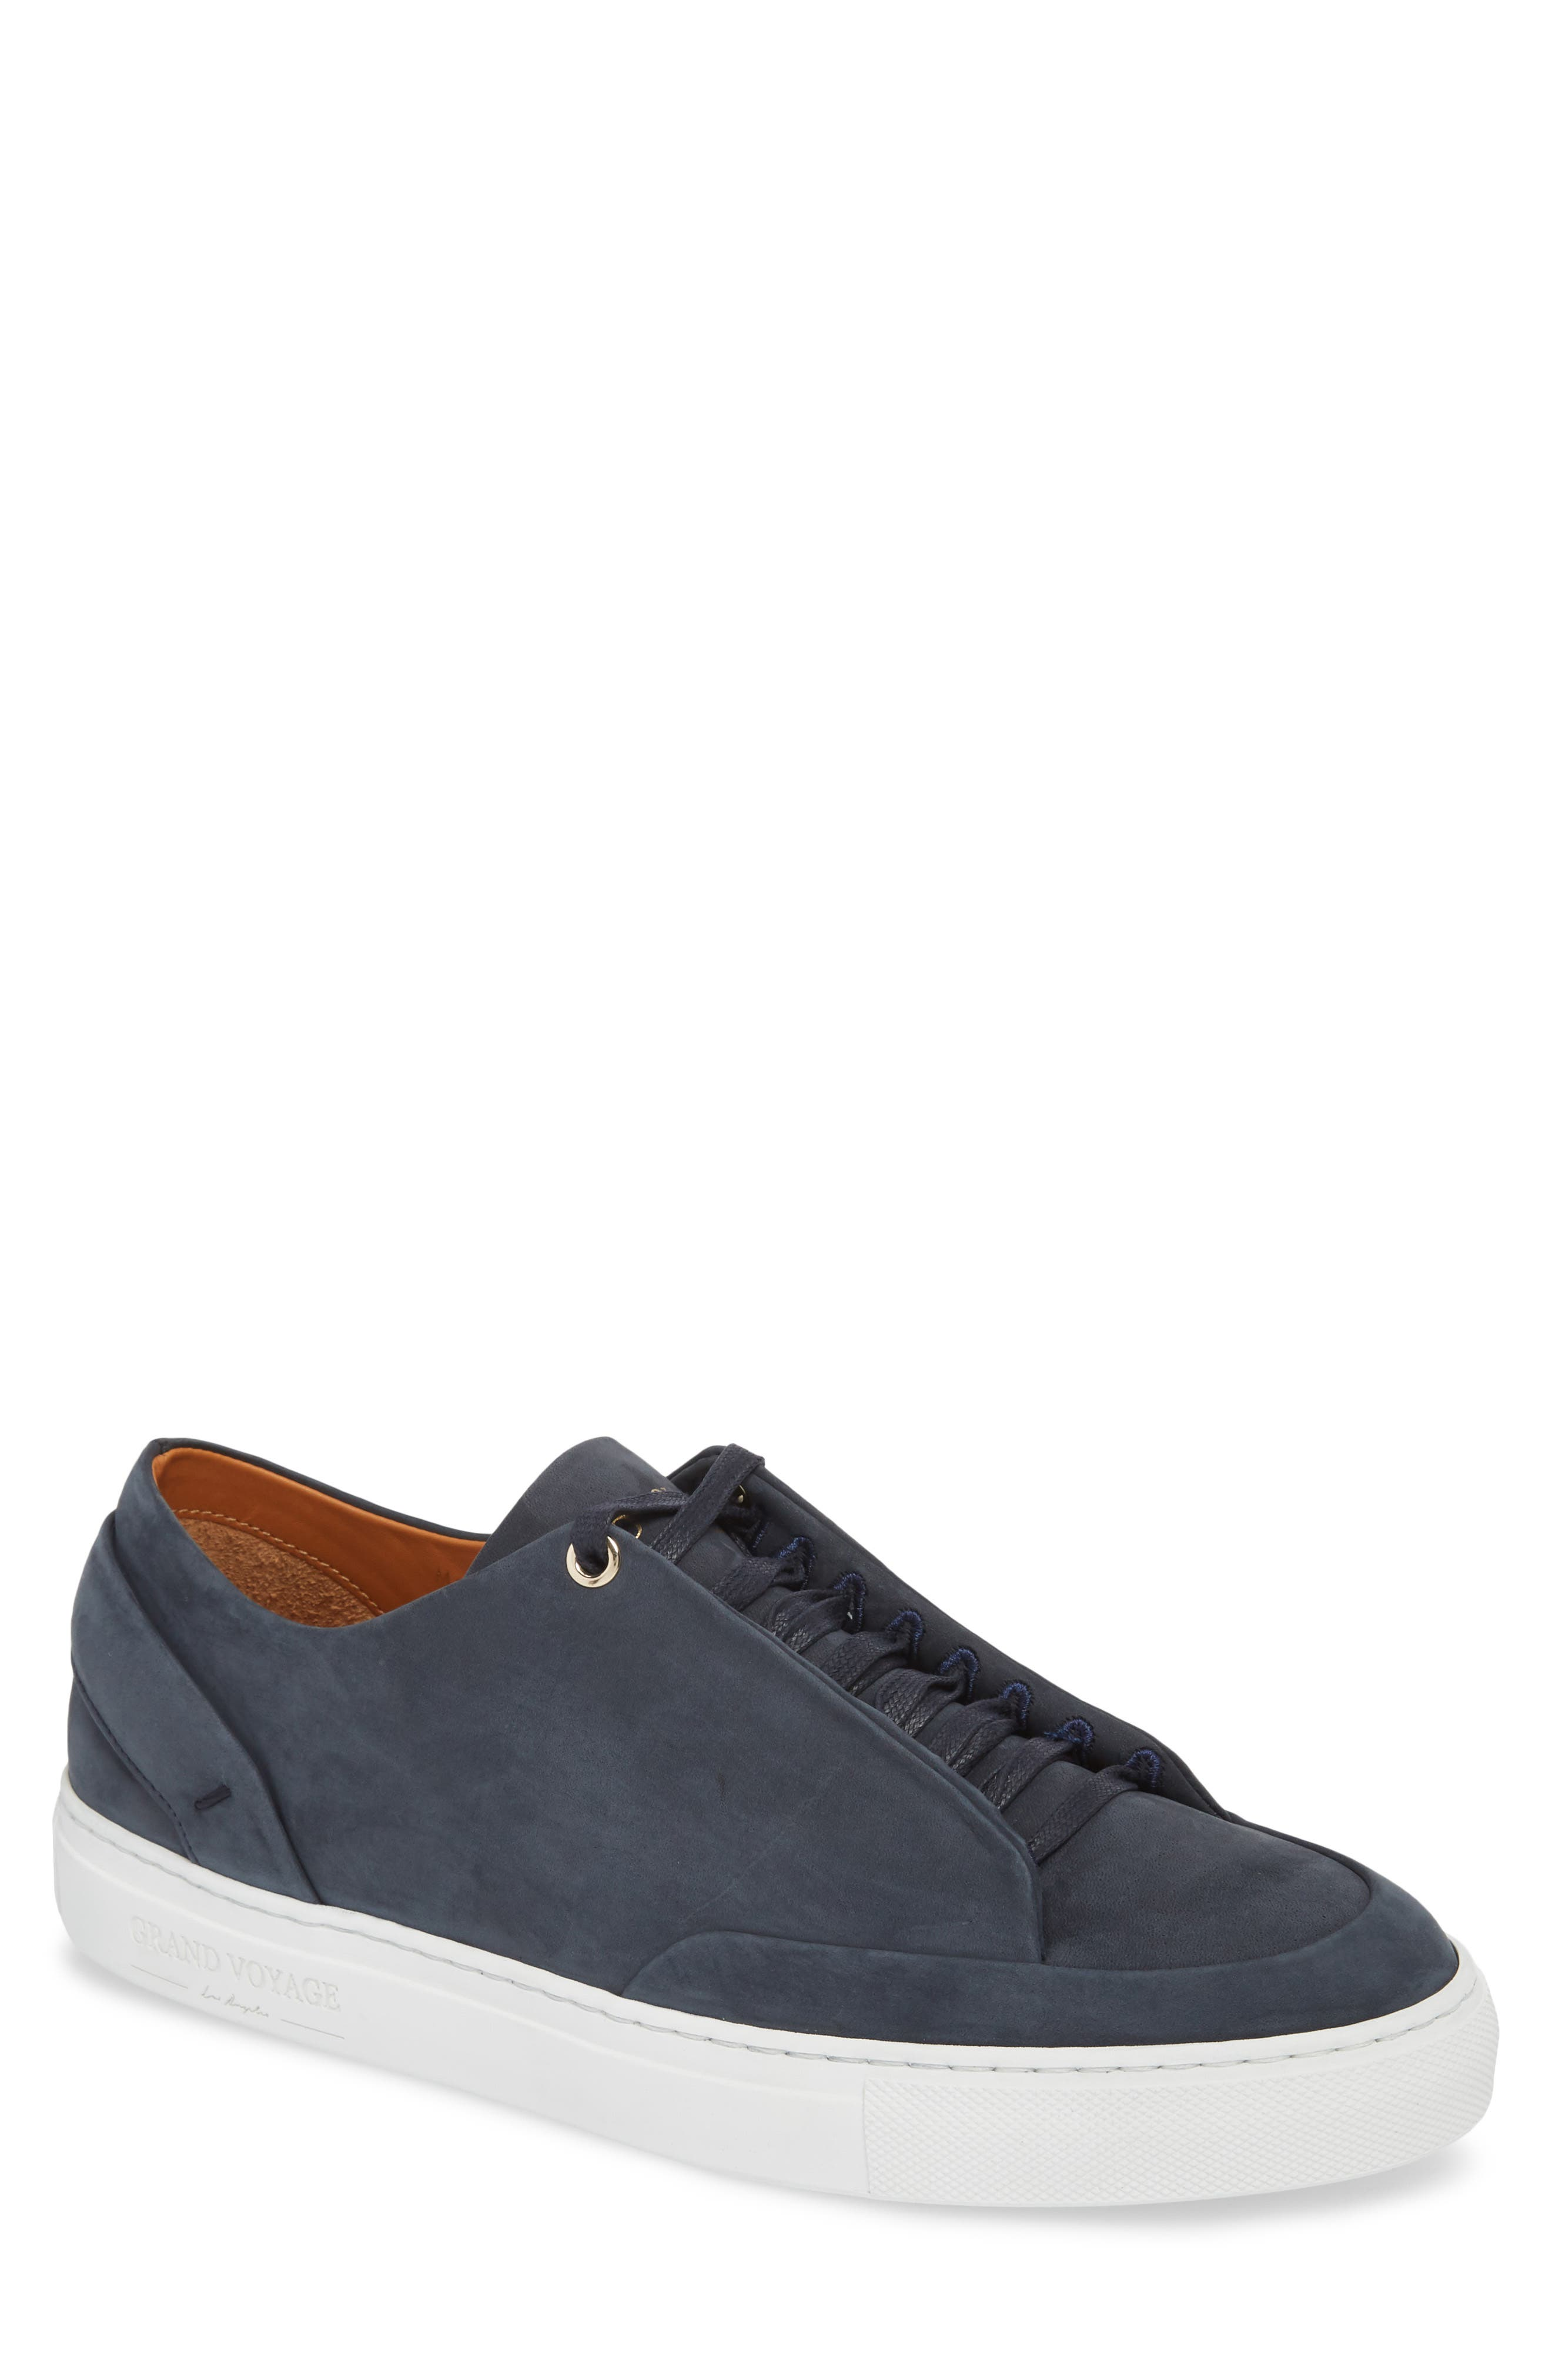 Avedon Sneaker,                         Main,                         color, Navy Nubuck Leather